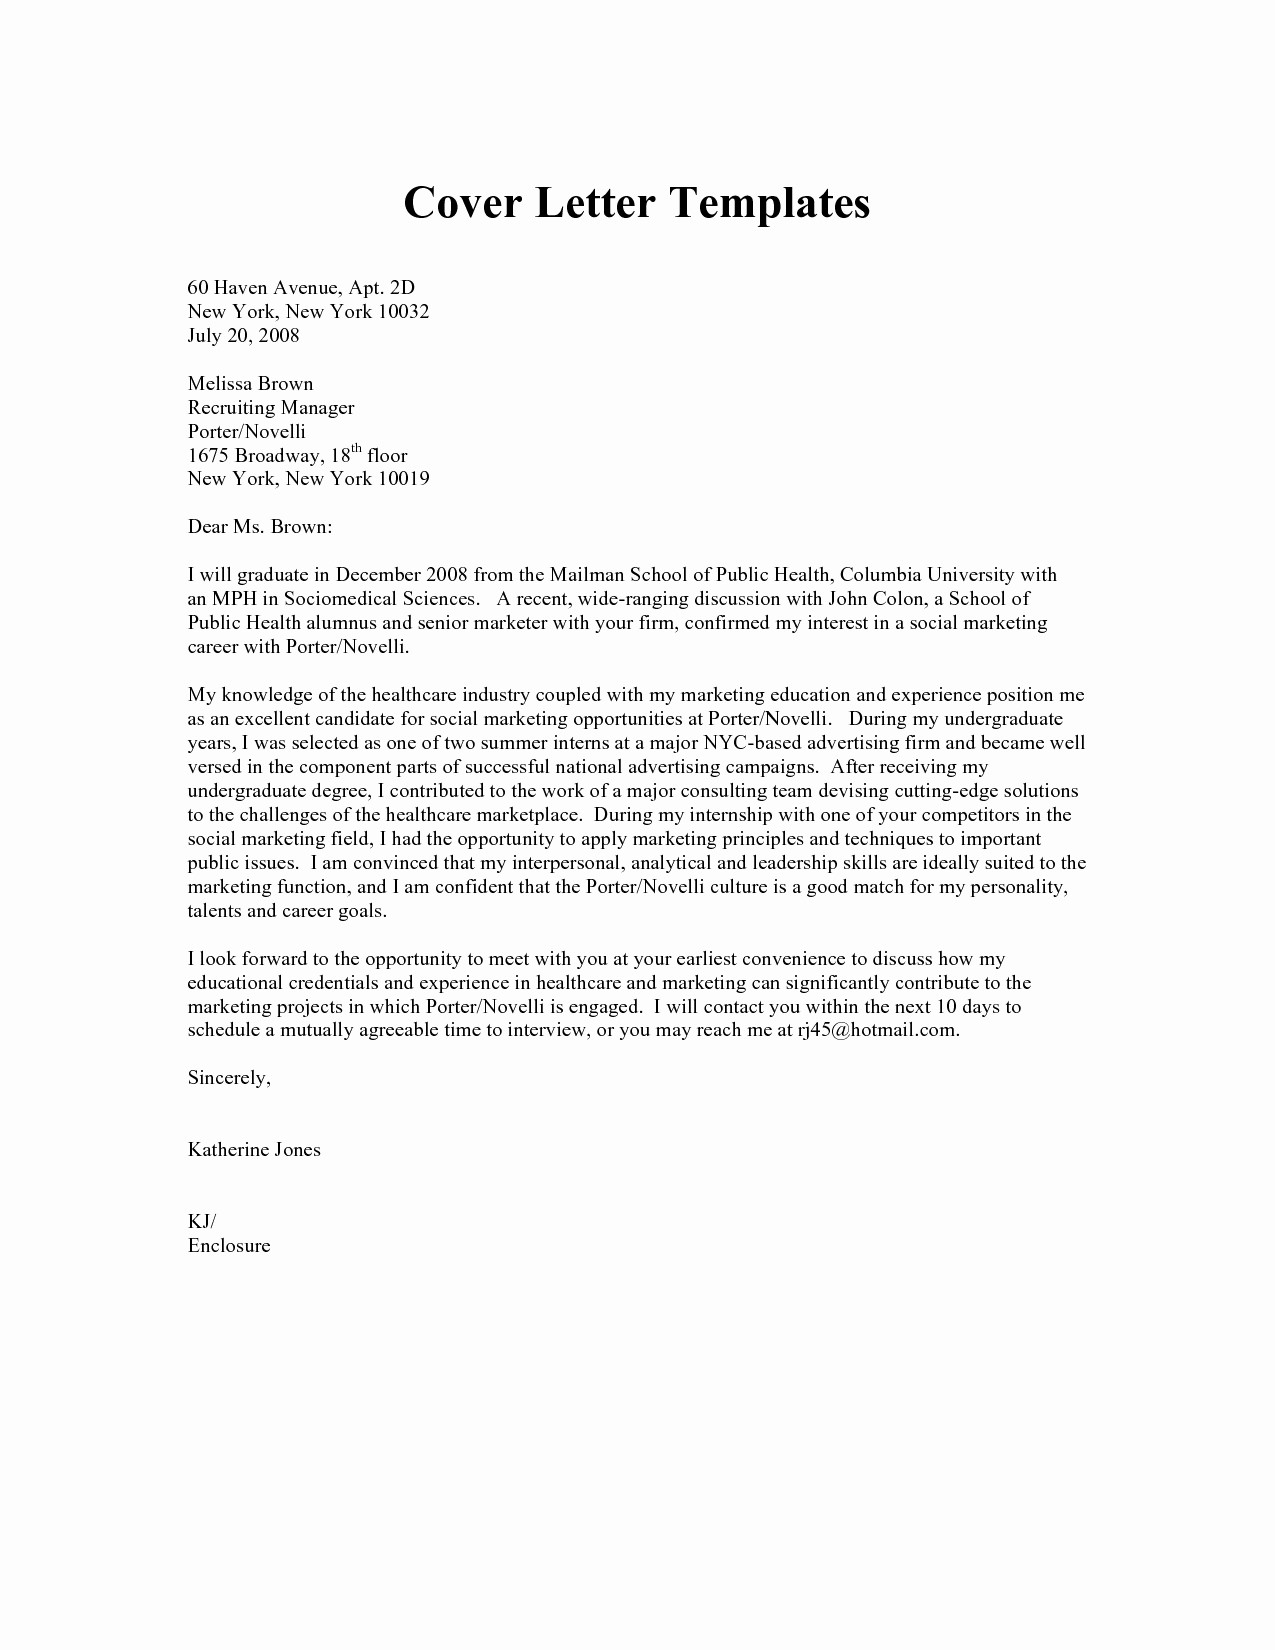 Cover Letter Template Healthcare - Healthcare Cover Letter Examples Inspirational Higher Education